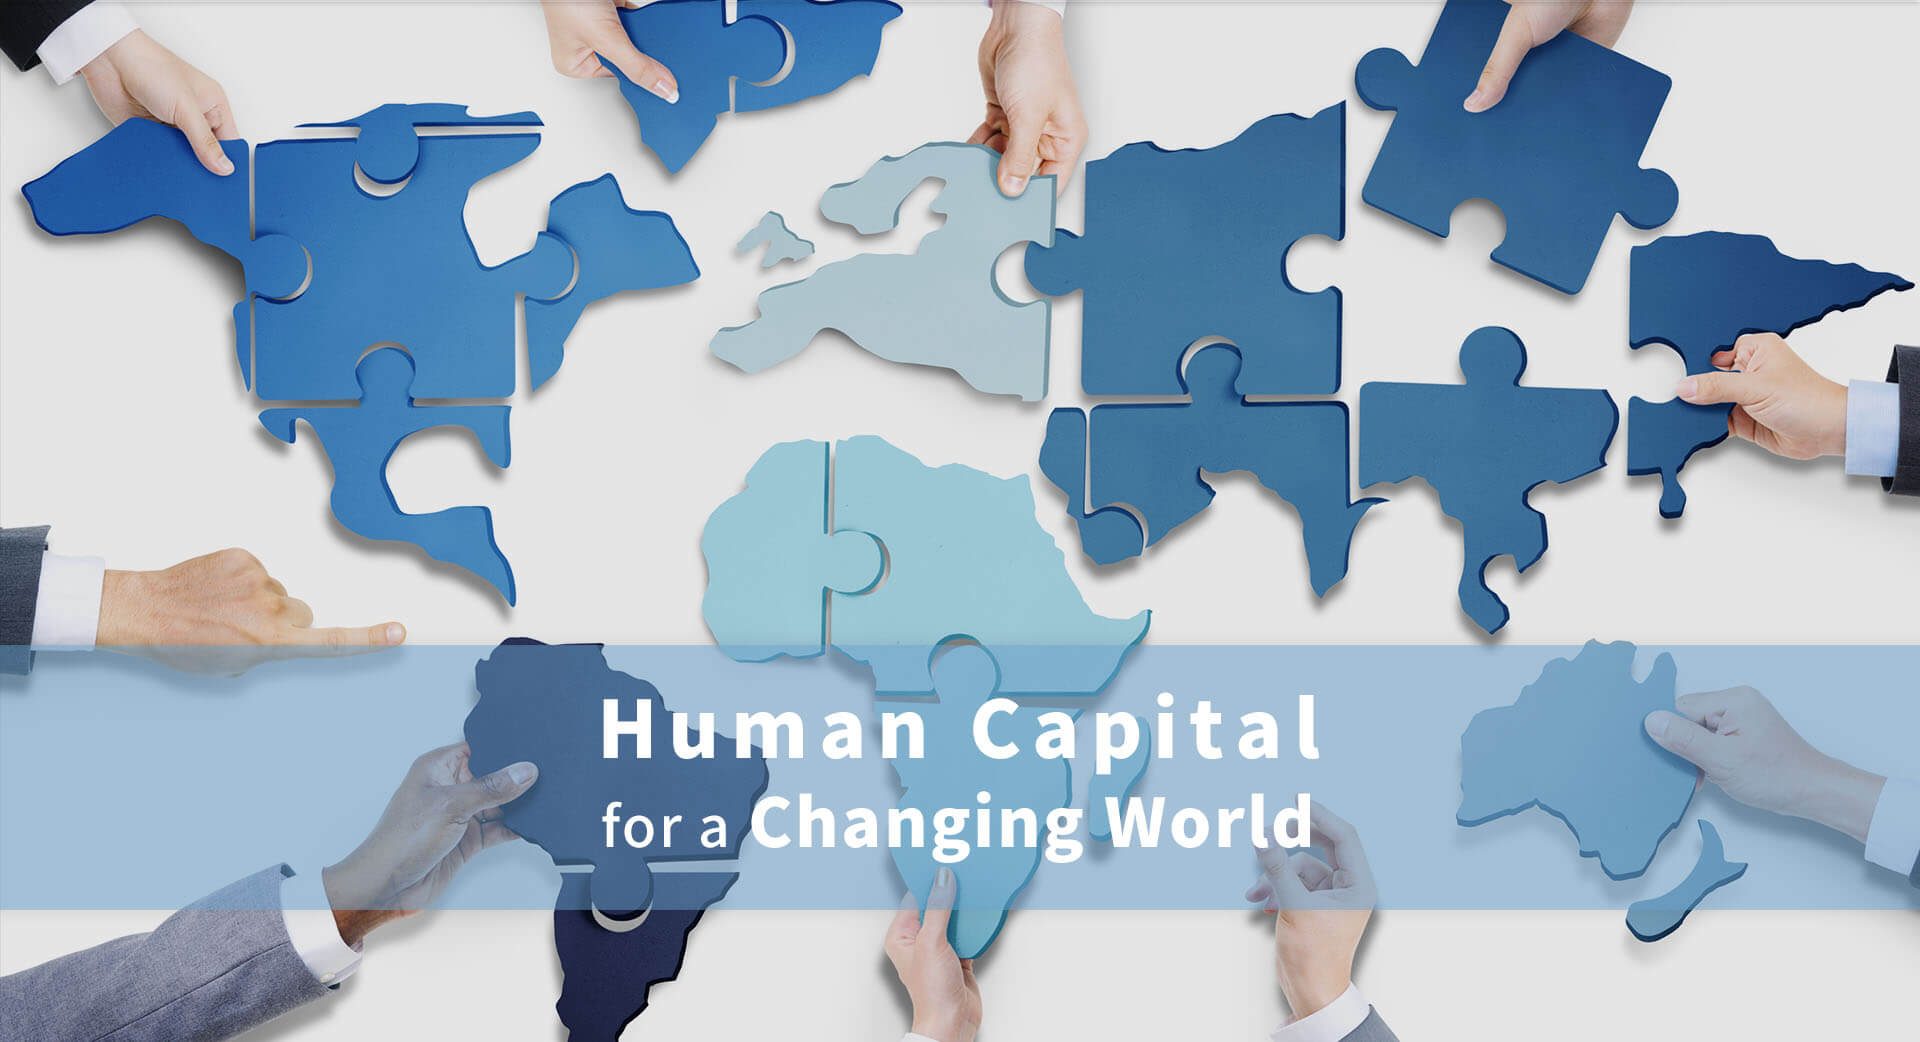 Human Capital for a Changing World